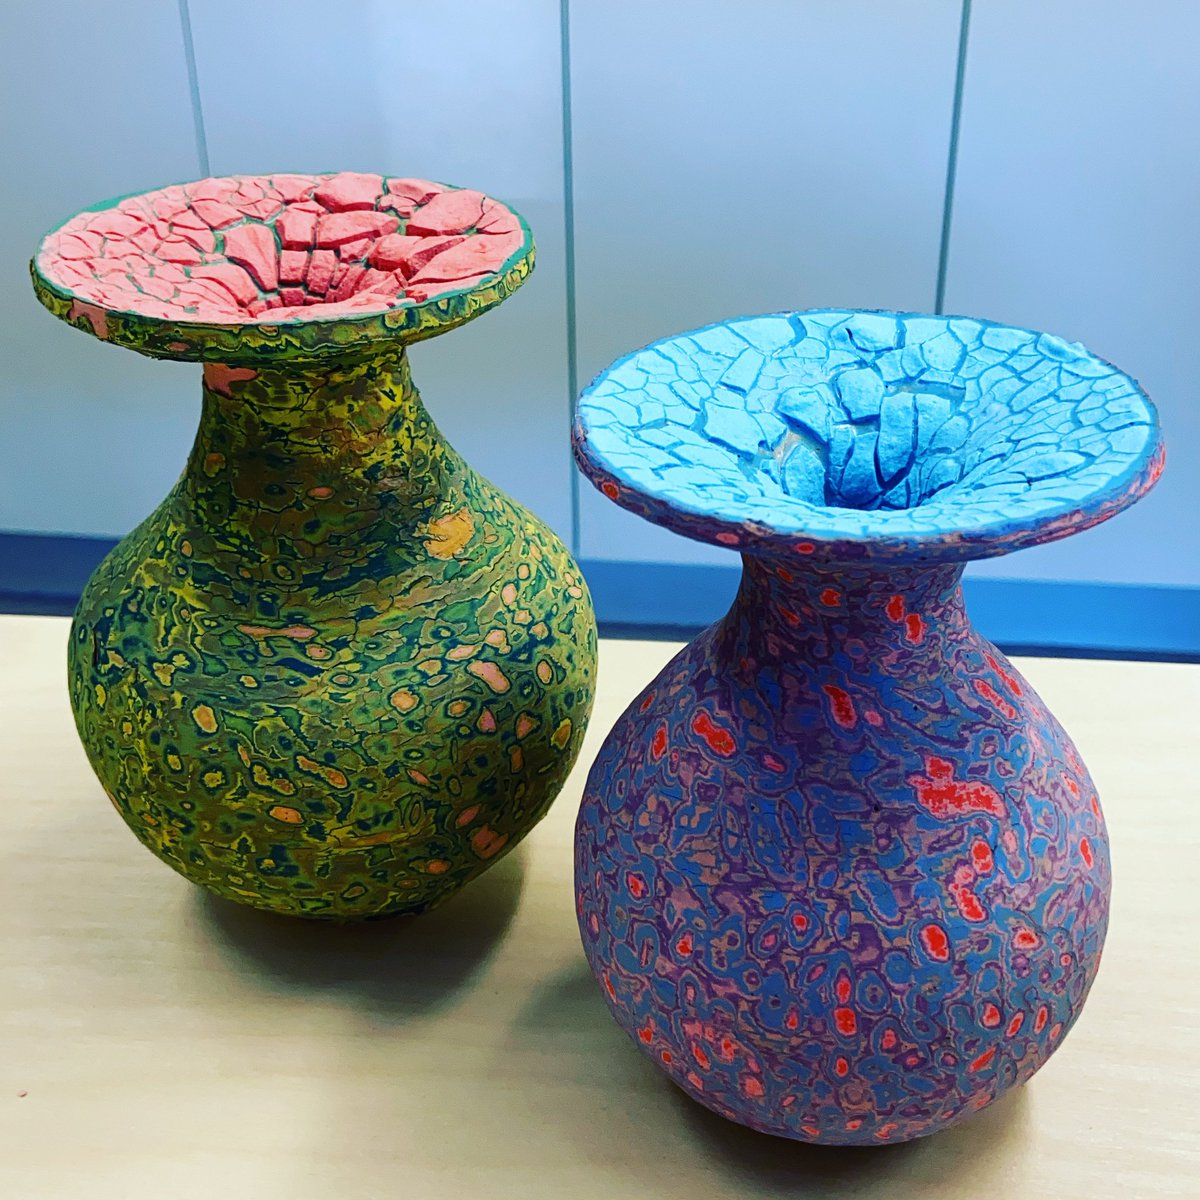 Replying to @Sethrogen: I made these vases: